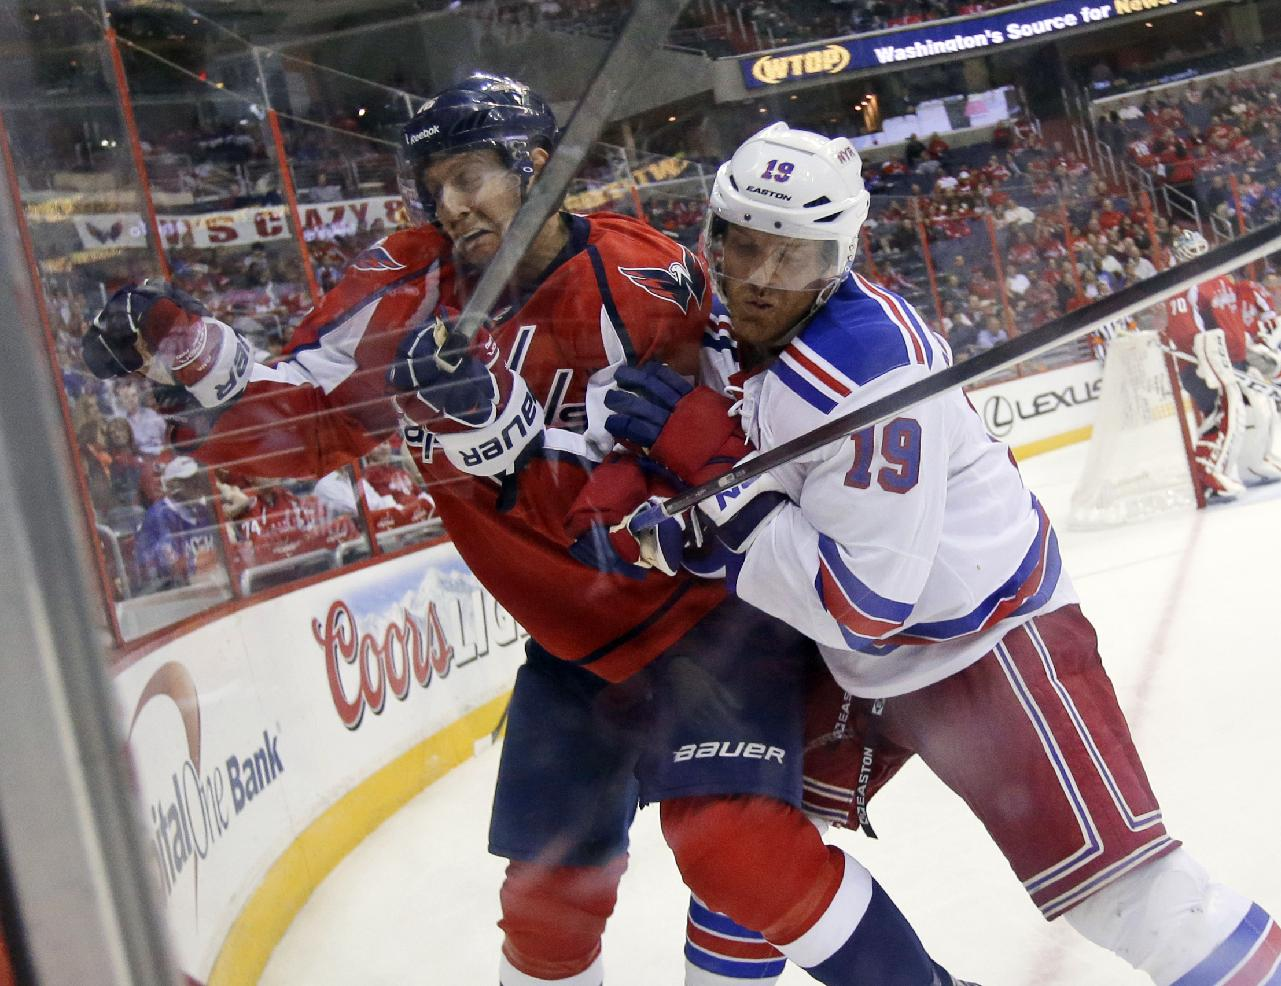 Washington Capitals right wing Eric Fehr (16) is boarded by New York Rangers center Brad Richards (19) in the third period of an NHL hockey game, Wednesday, Oct. 16, 2013, in  Washington. The Rangers won 2-0